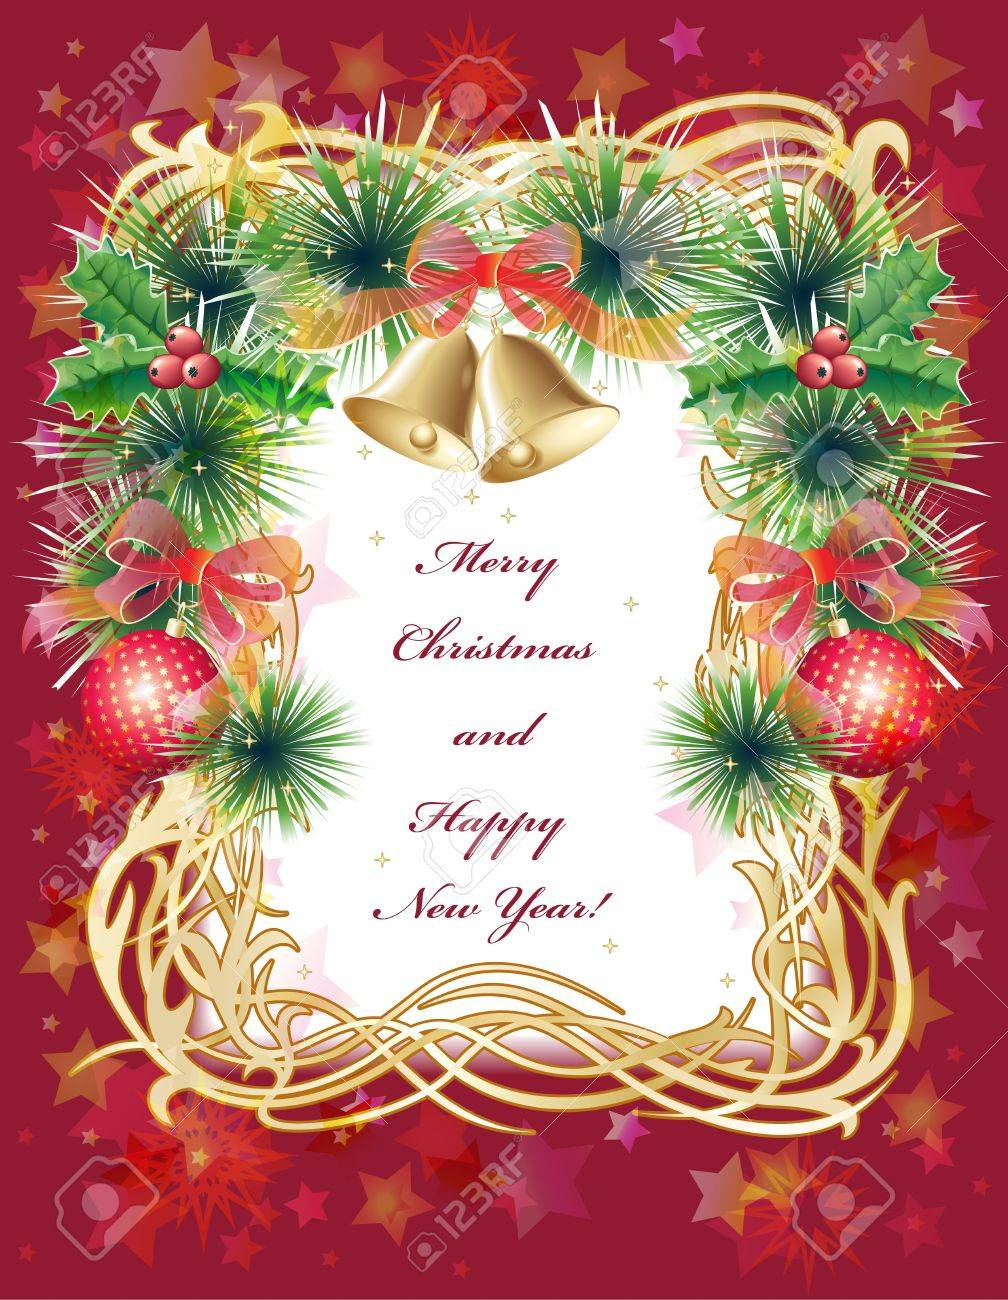 Gold And Red Christmas Greeting Card With Balls Bells Holly